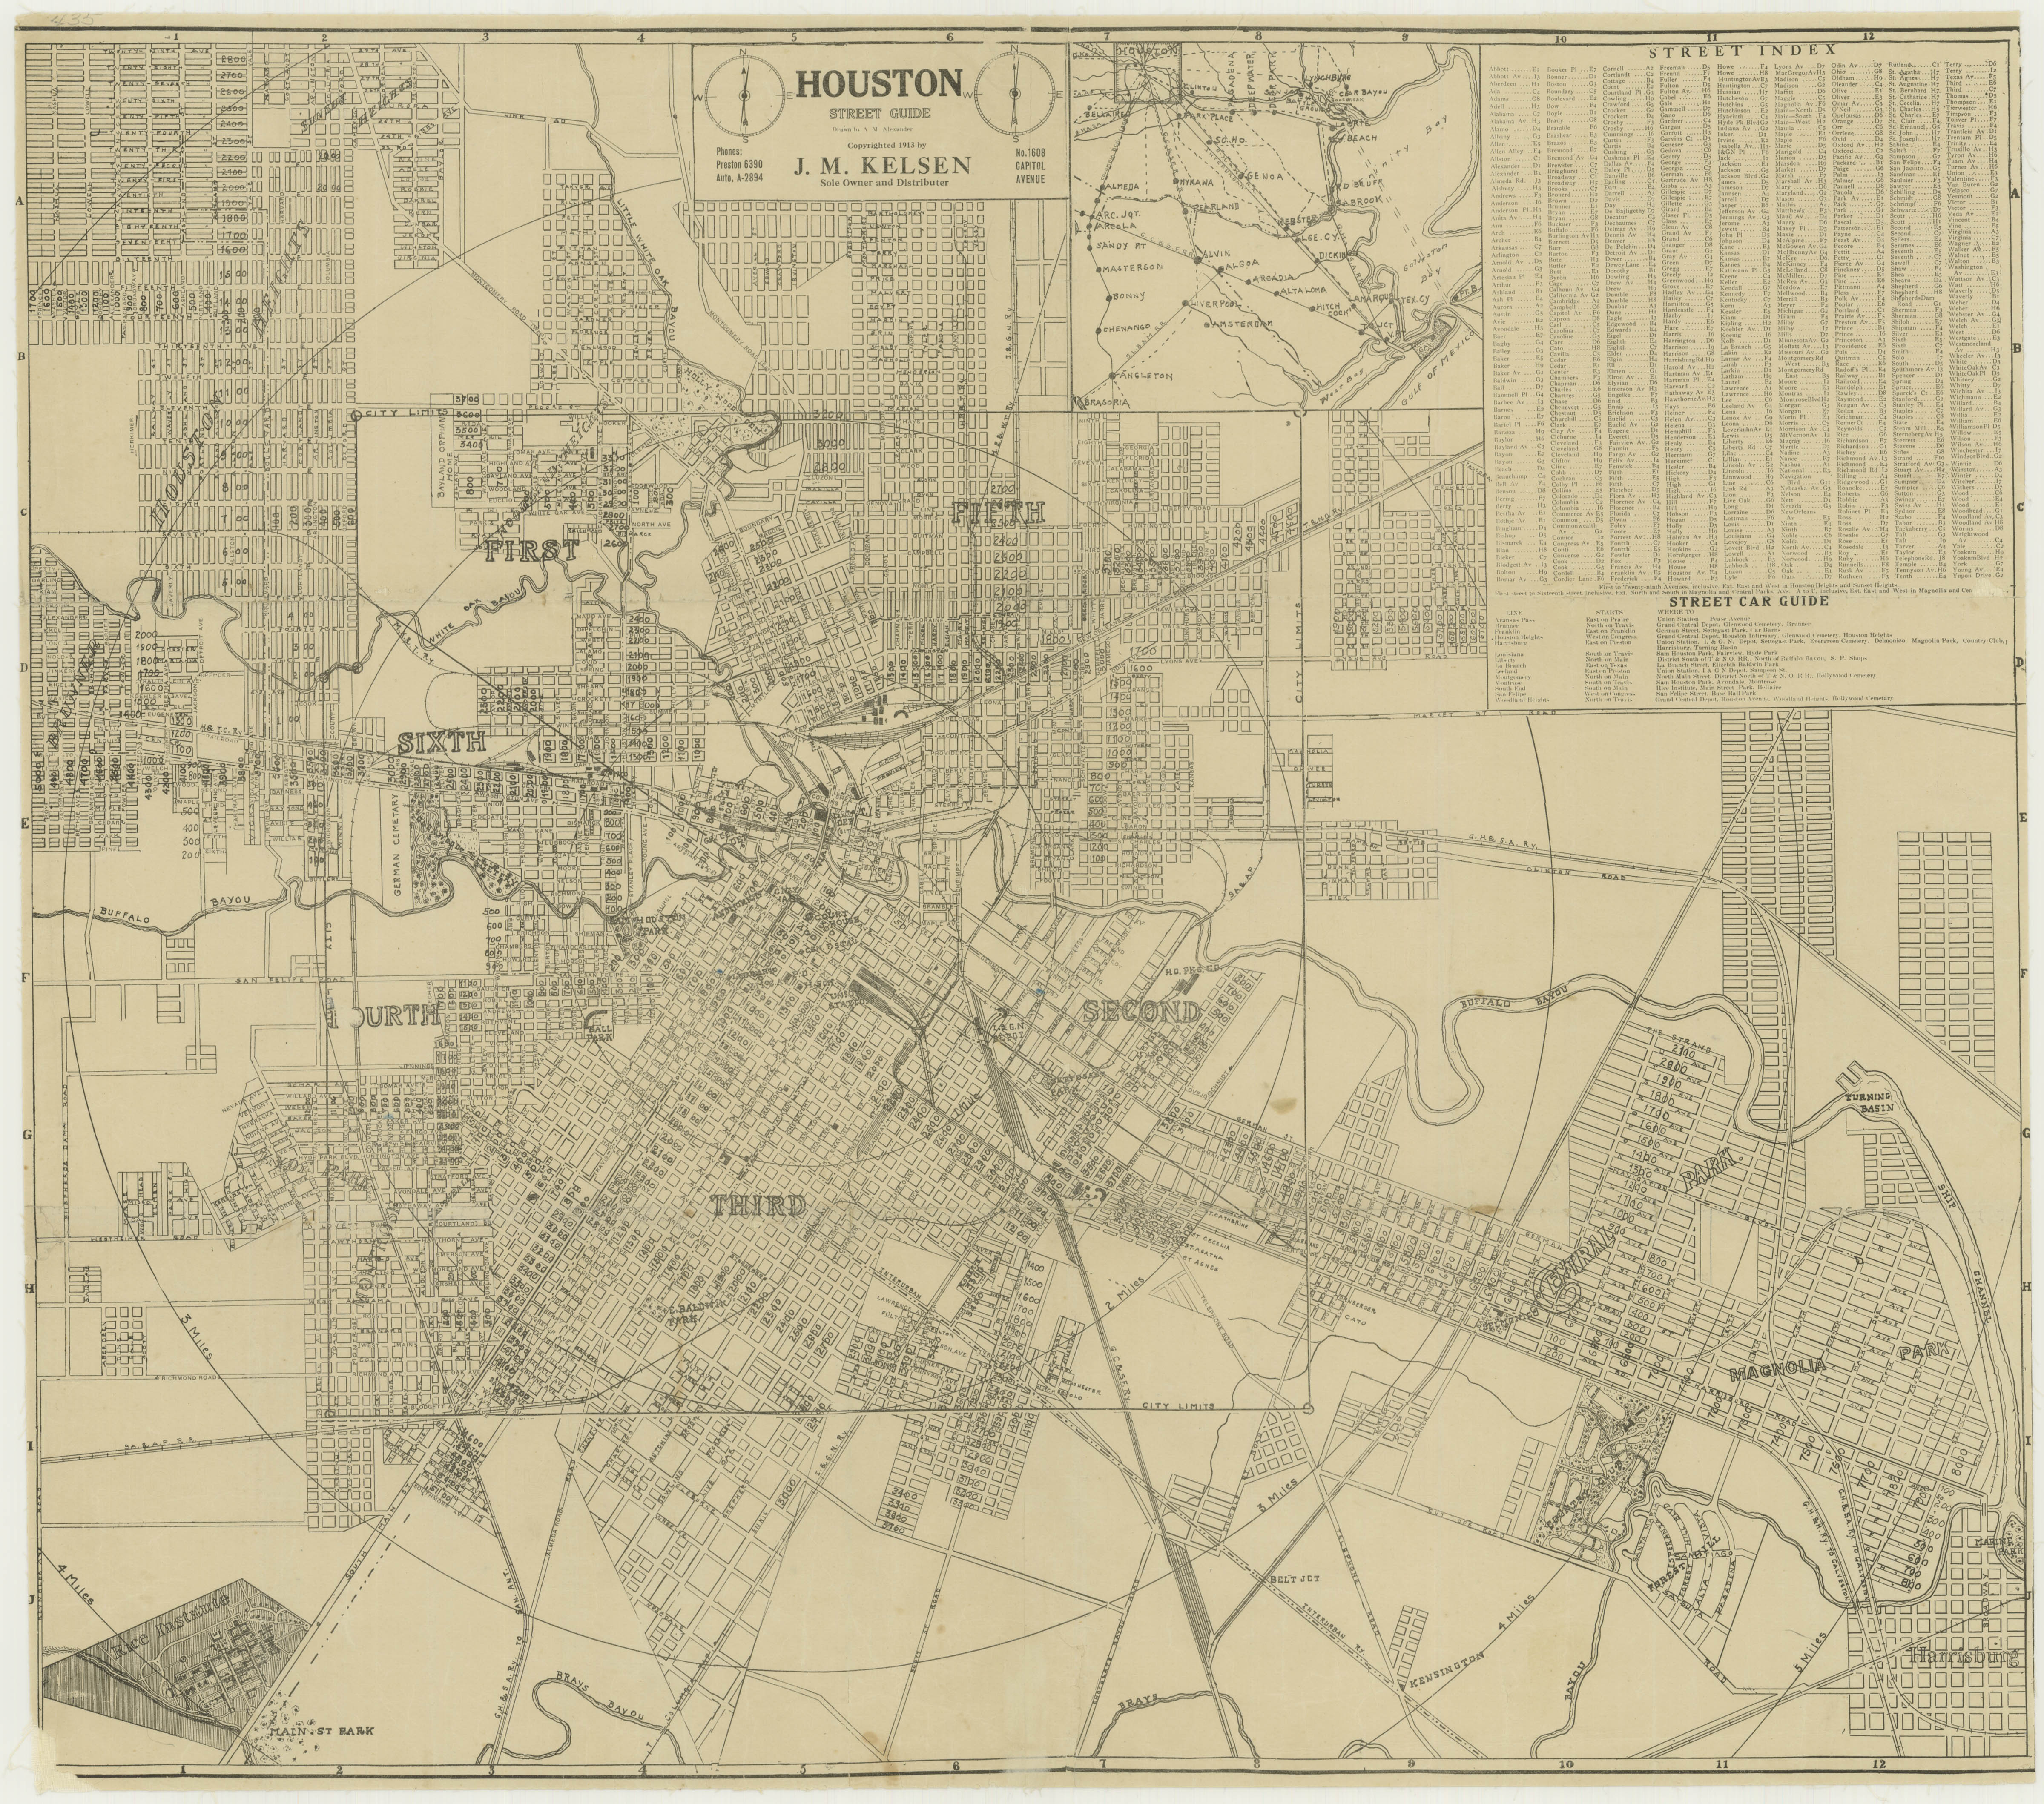 Section of a map of Houston from 1913, showing the location of the park. (Select the image to view the full map.)